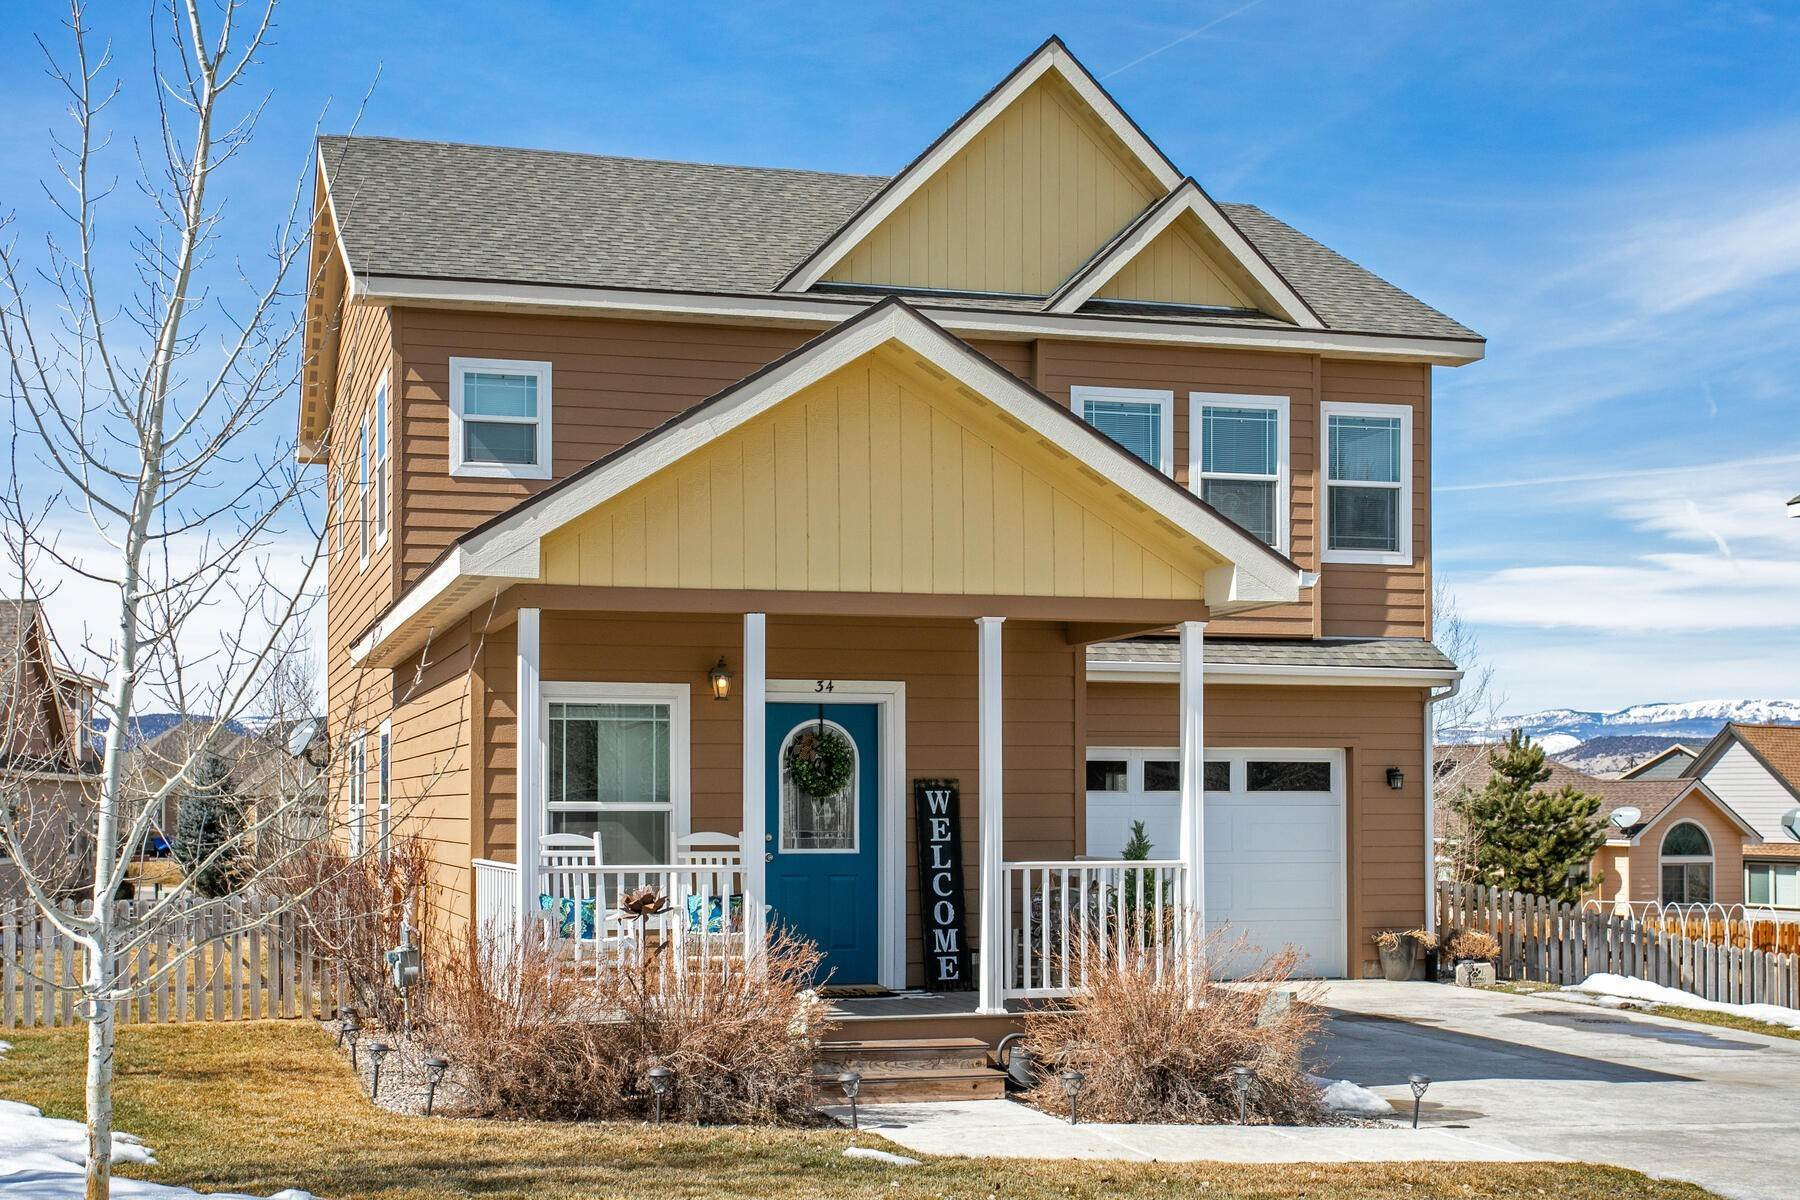 Single Family Homes for Sale at Spacious 3 Bedroom in Buckhorn Valley 34 Maverick Court Gypsum, Colorado 81637 United States